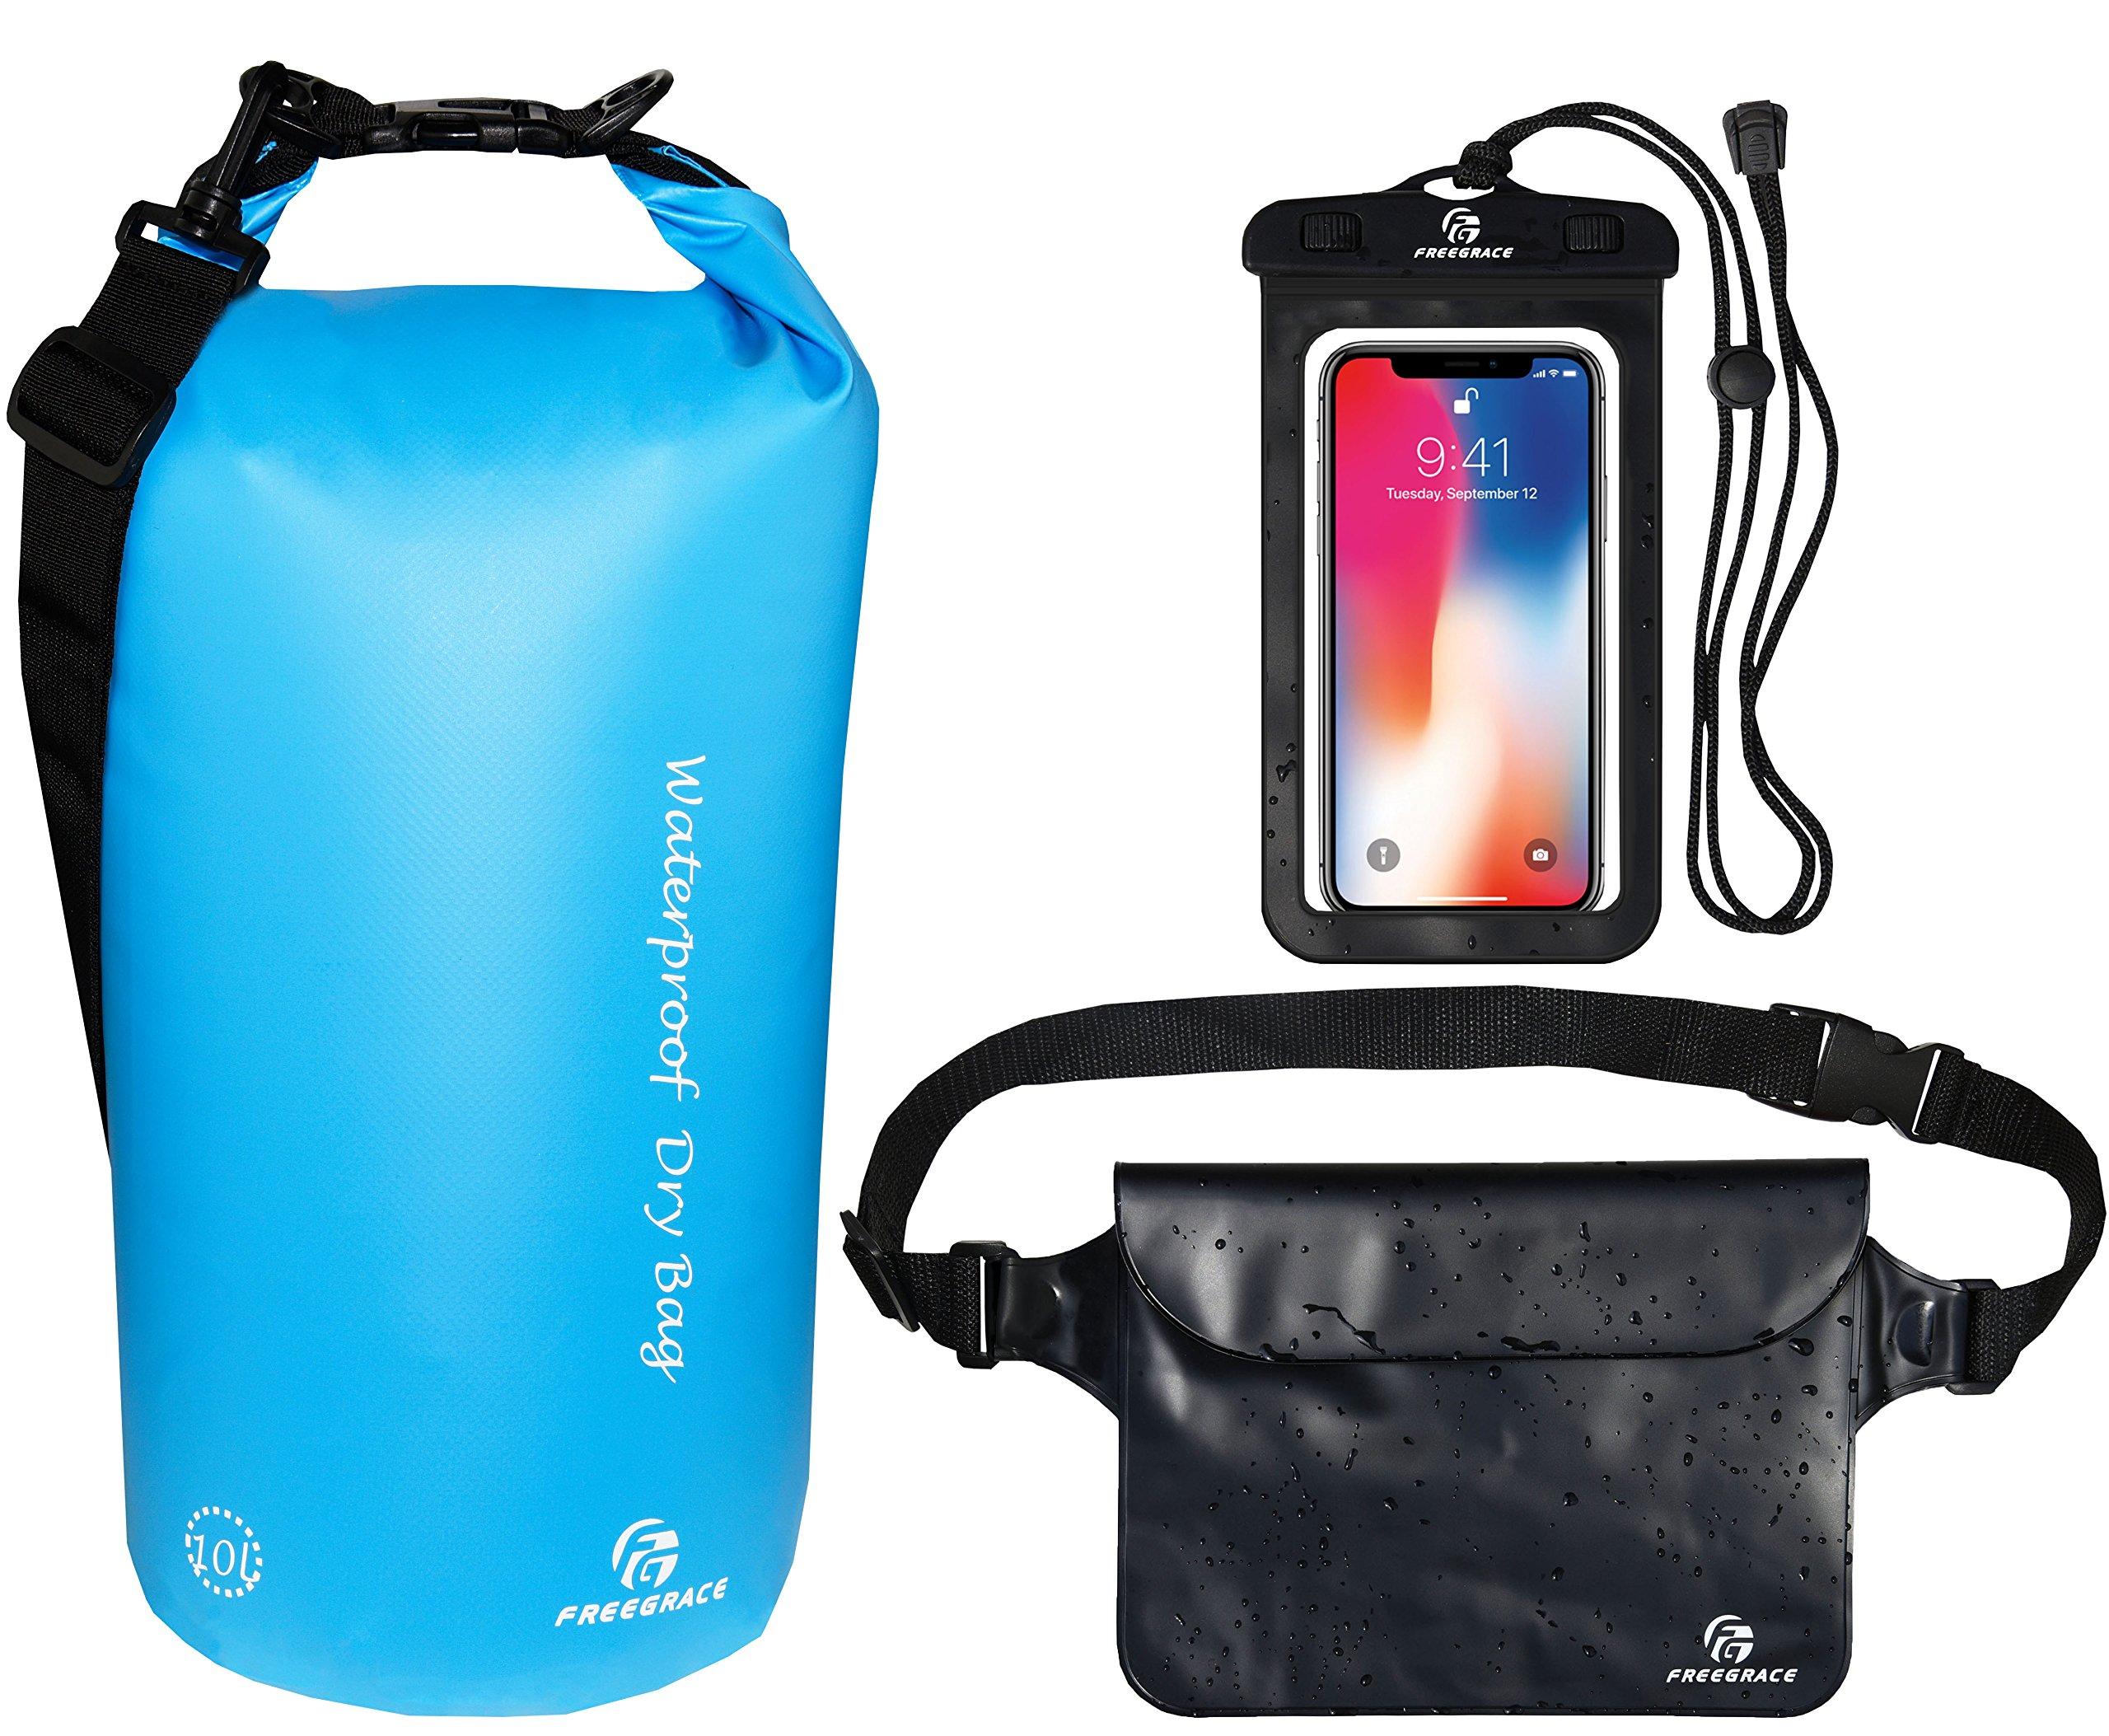 Freegrace Waterproof Dry Bags Set of 3 Dry Bag with 2 Zip Lock Seals & Detachable Shoulder Strap, Waist Pouch & Phone Case - Can Be Submerged Into Water (Sky Blue, 20L) by Freegrace